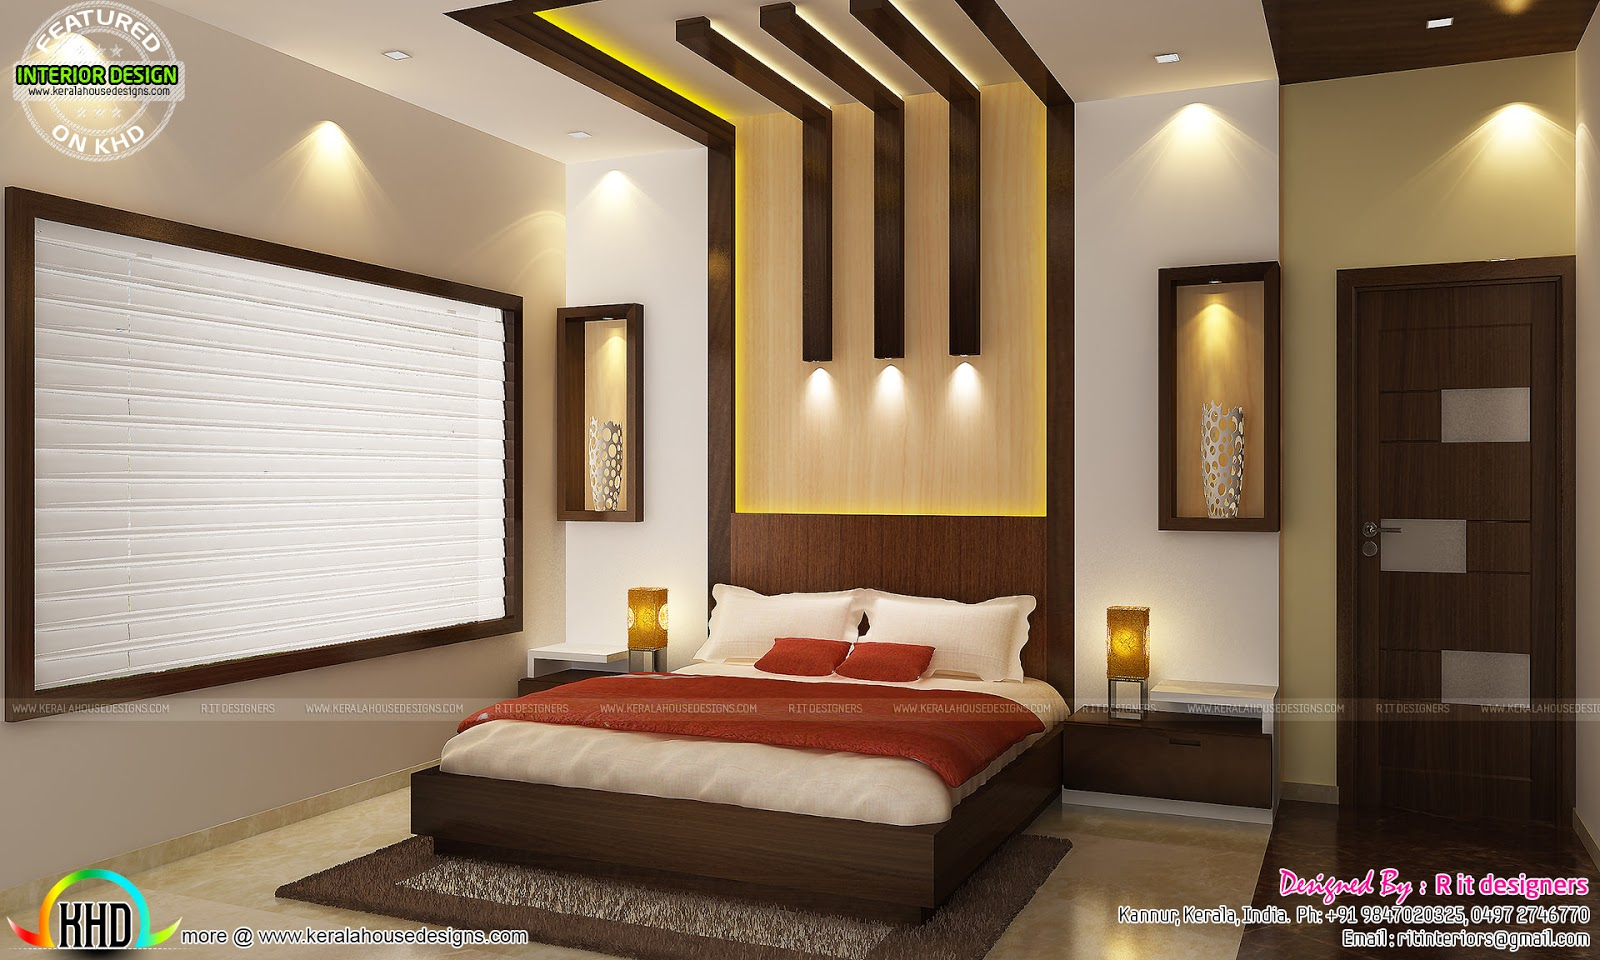 Kitchen living bedroom dining interior decor kerala for Interior designers in my area